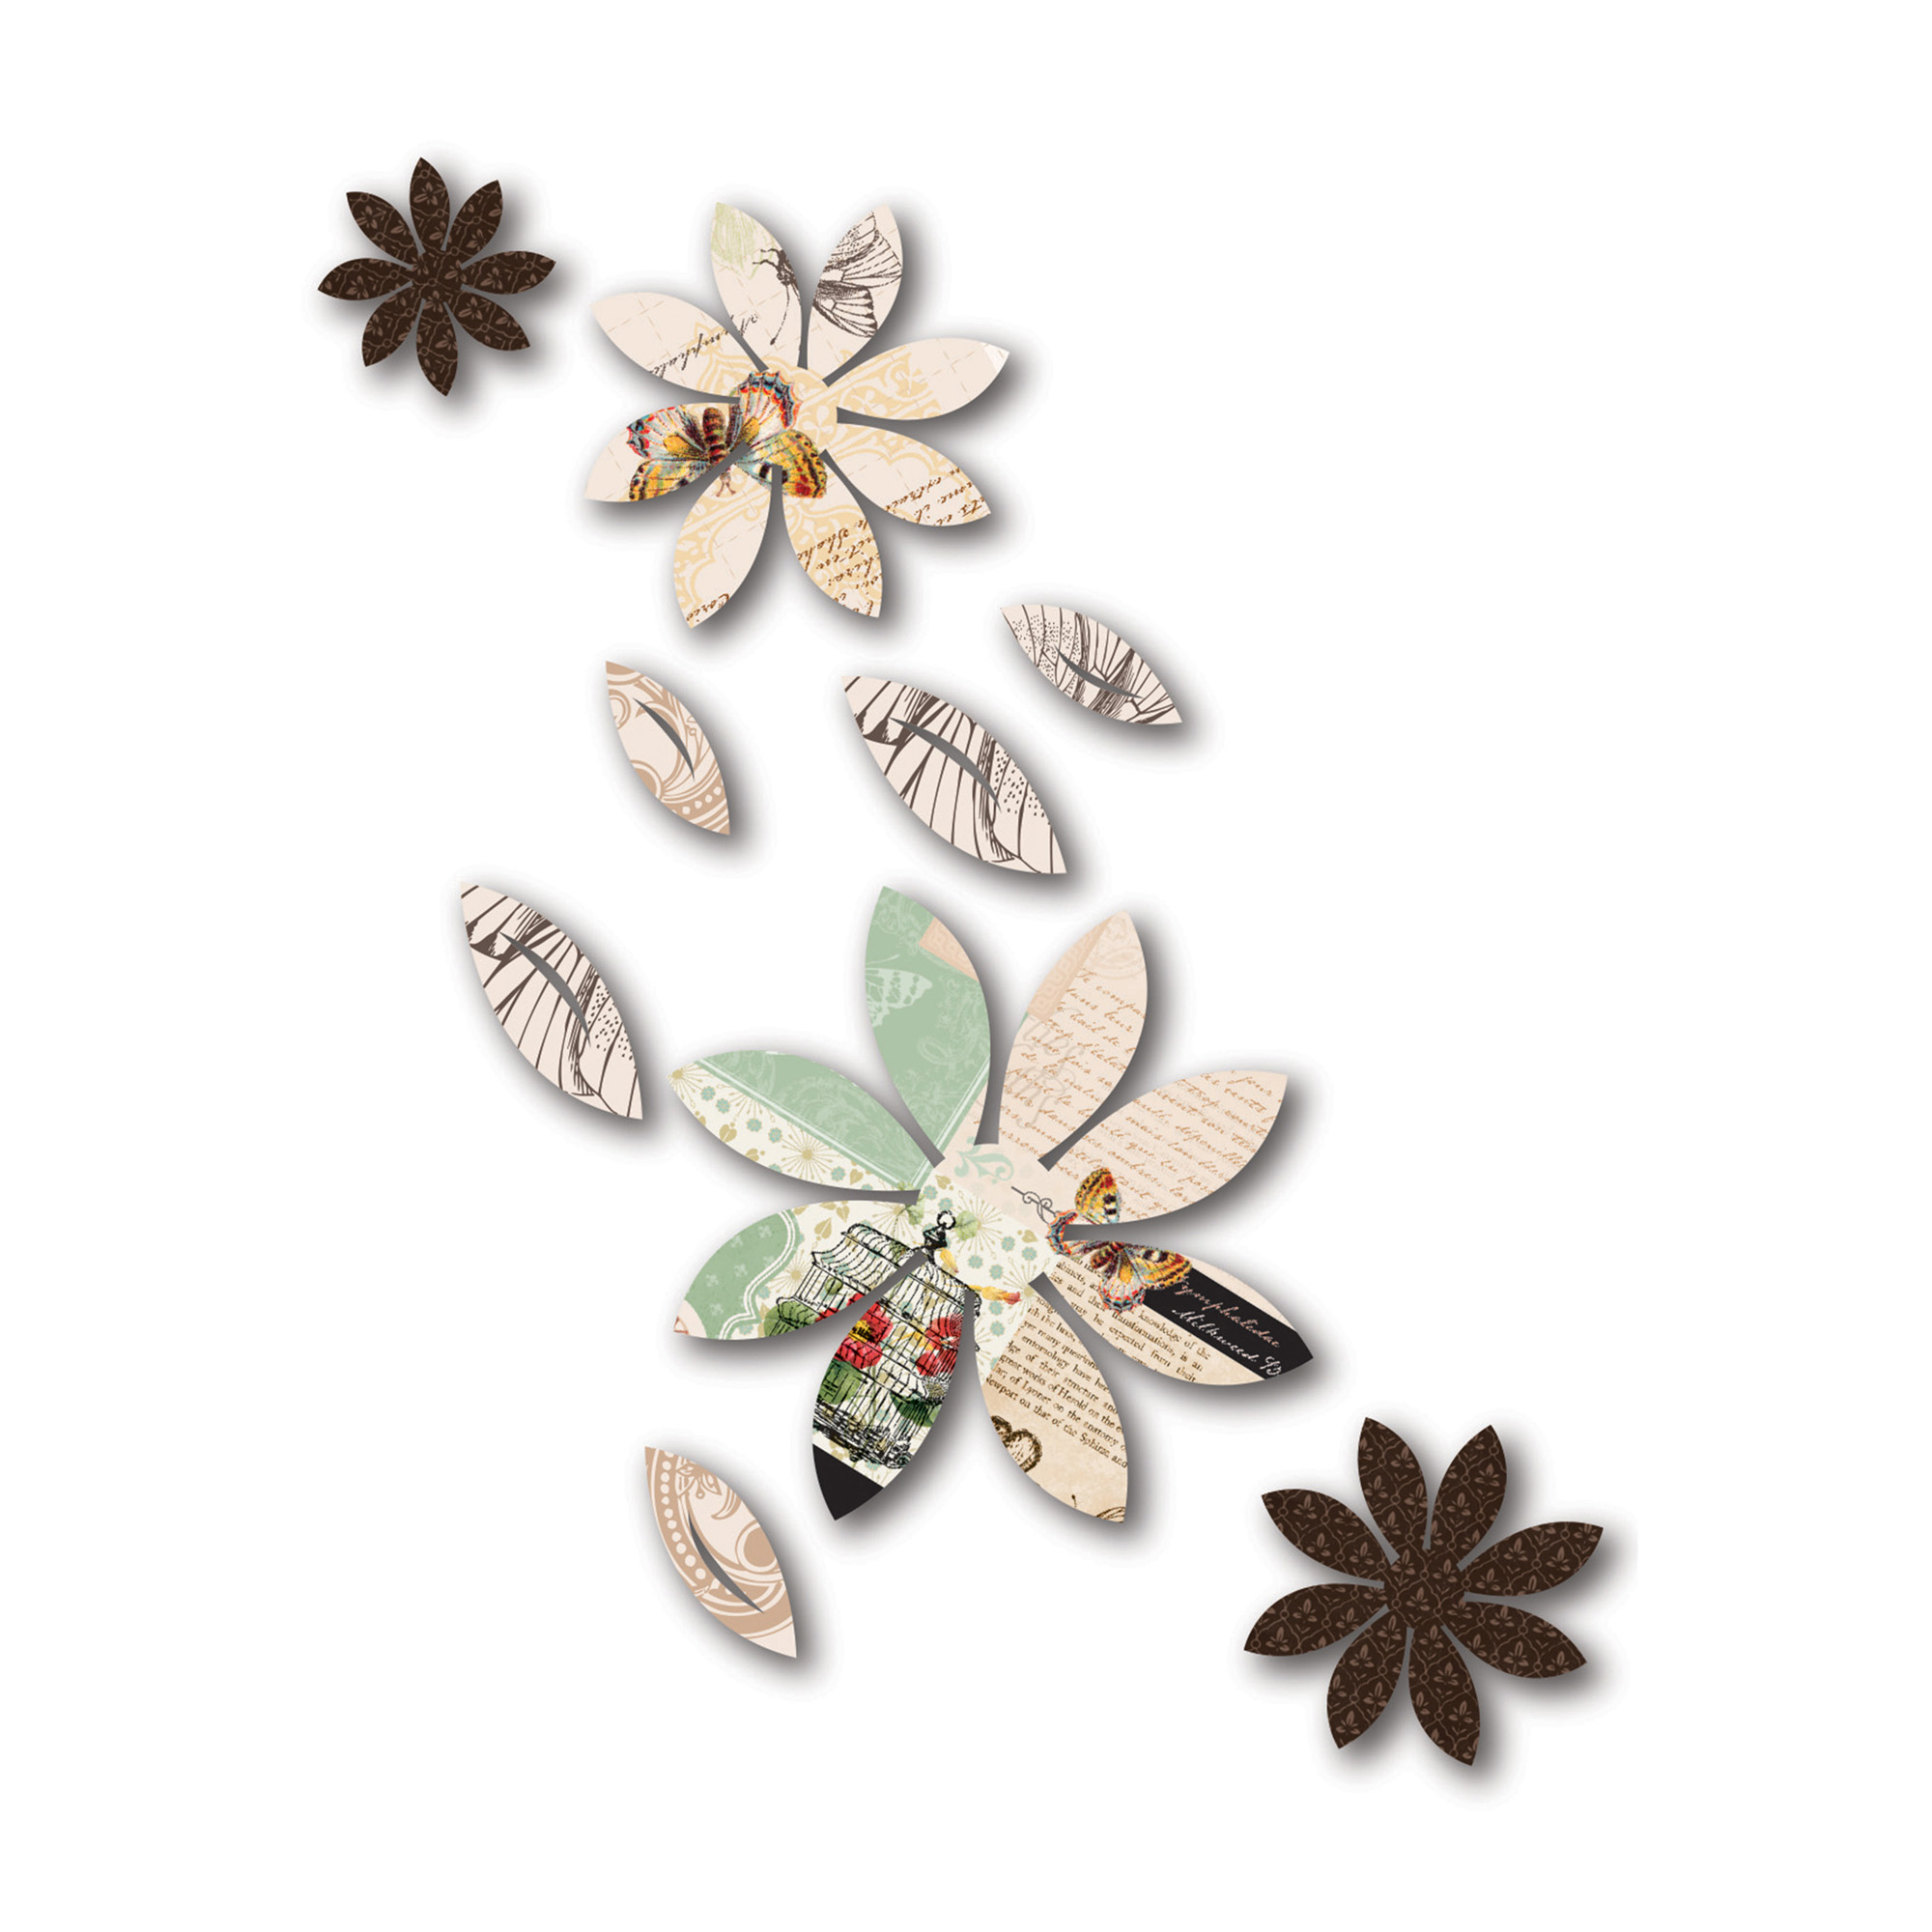 3D Wall Decor Brown Flowers With Mariposa Print, 9 Piece In Mariposa 9 Piece Wall Decor (View 4 of 30)